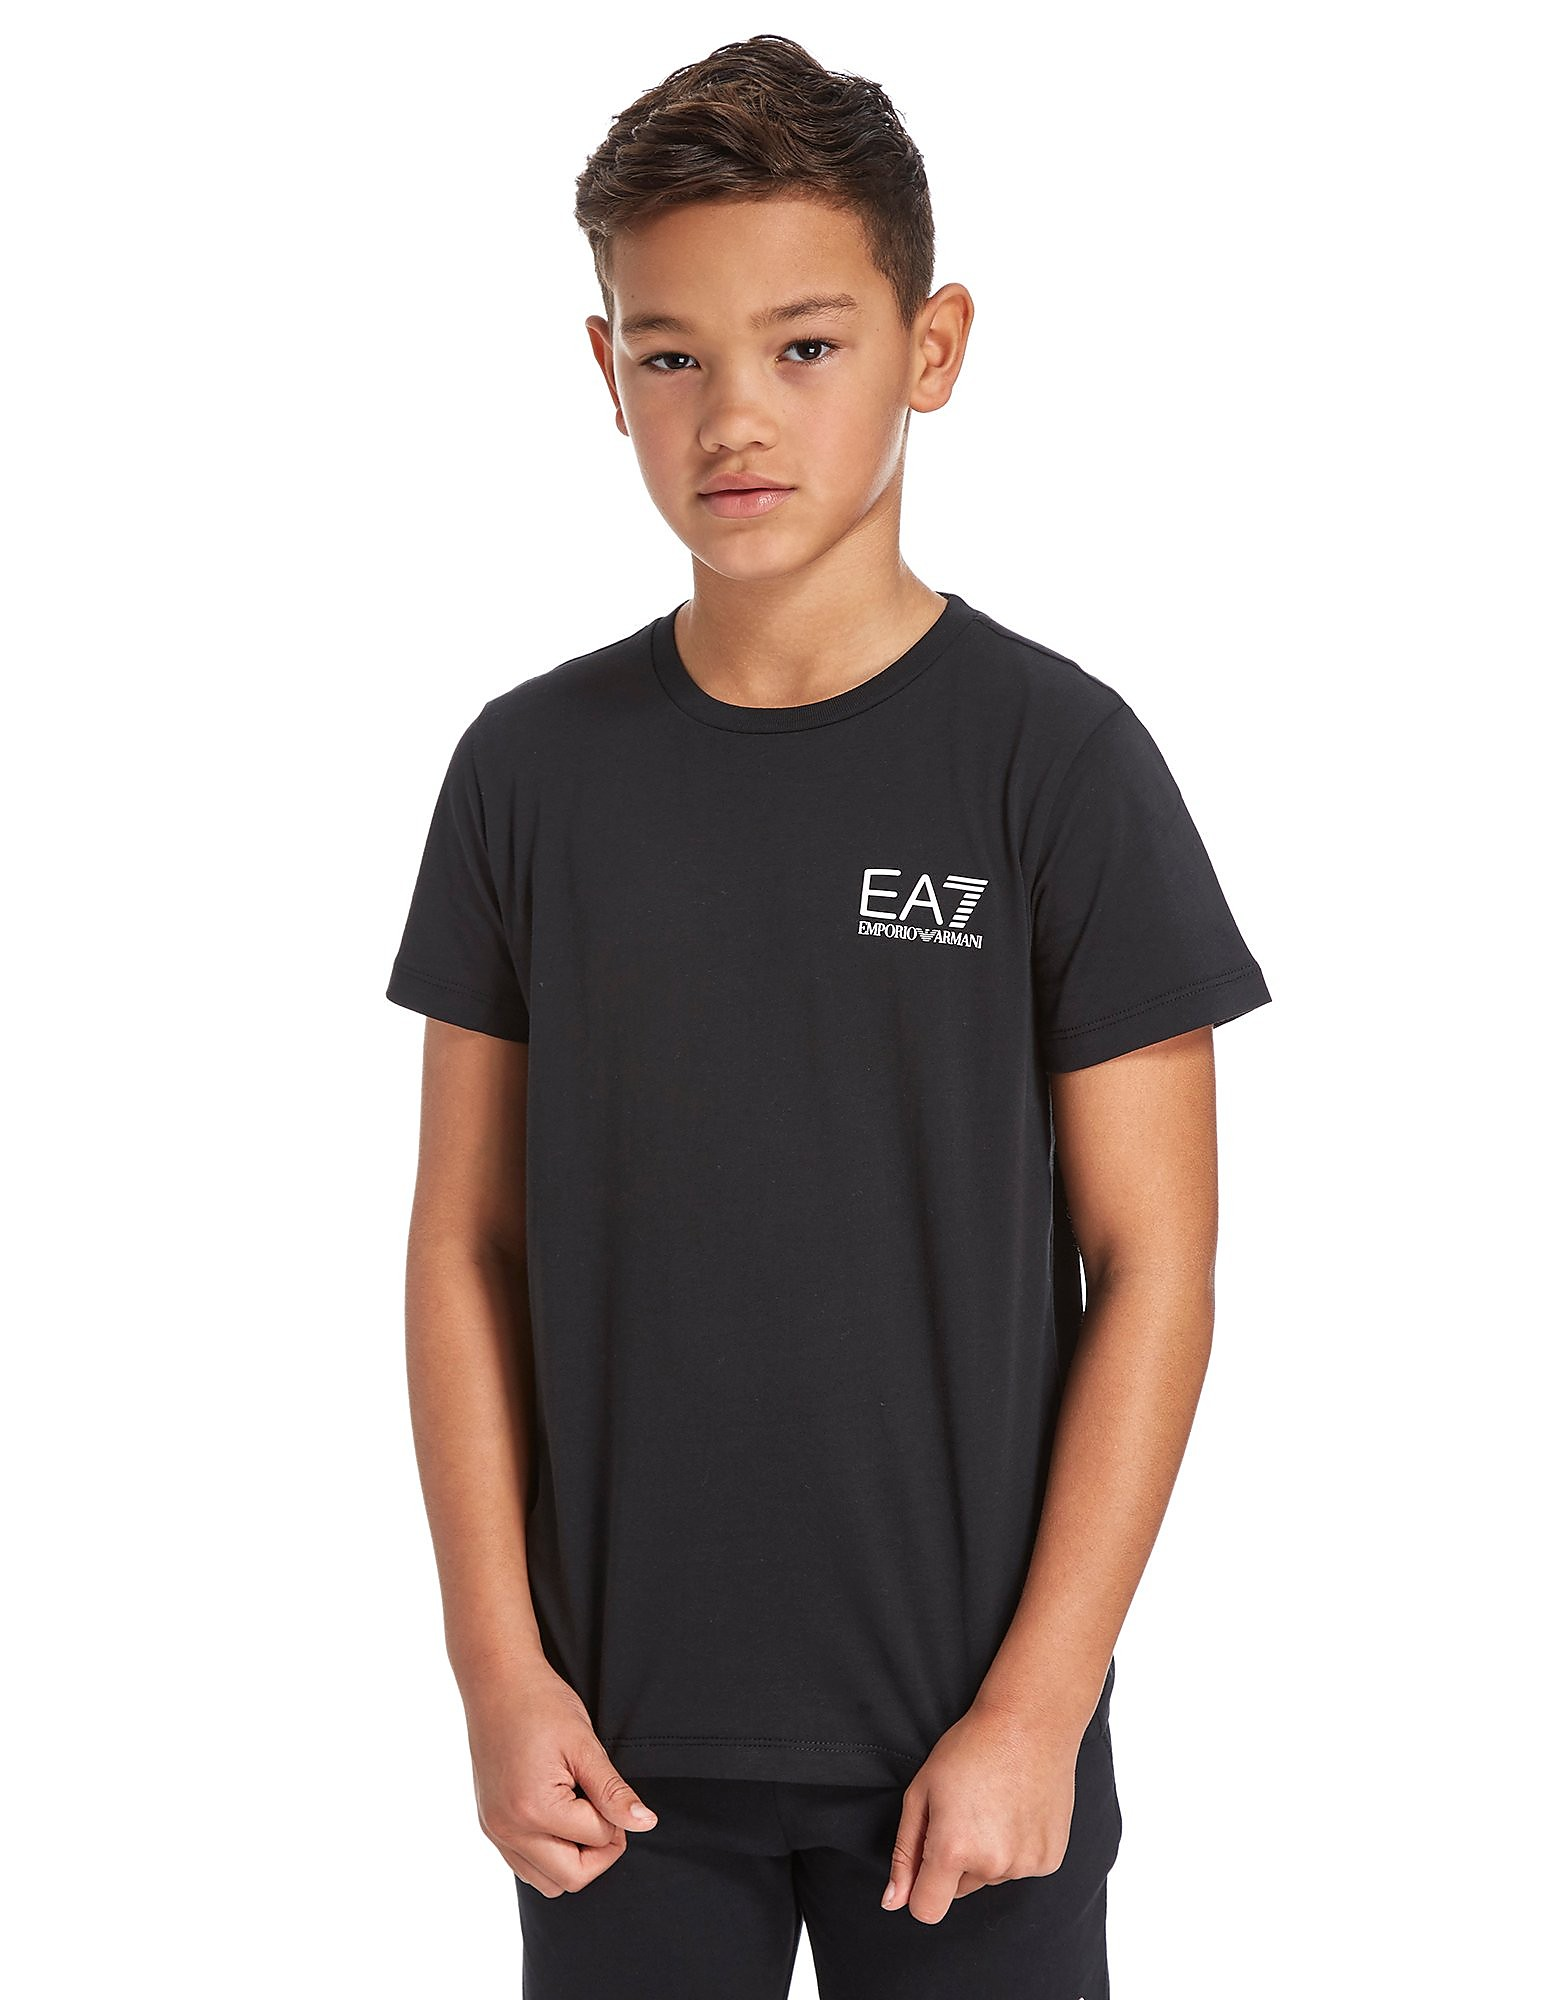 Emporio Armani EA7 Core T-Shirt Junior